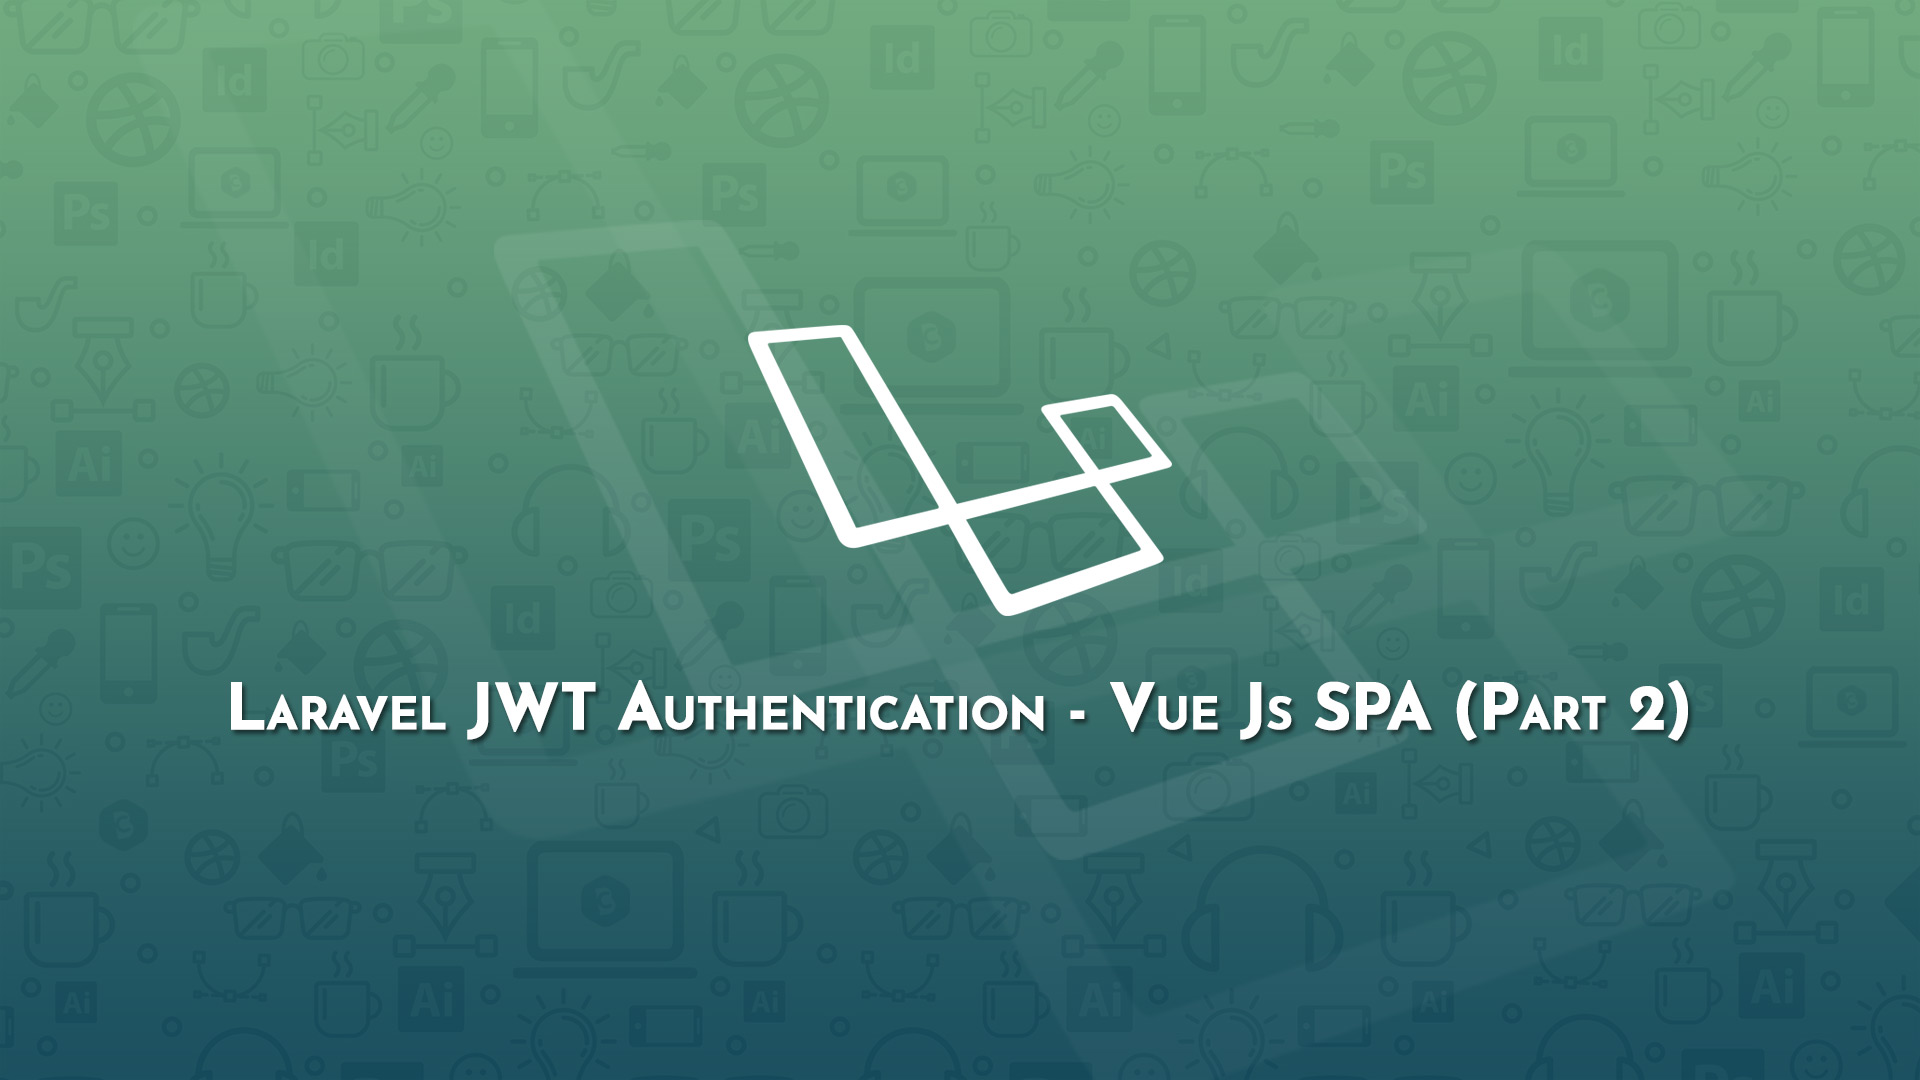 Laravel JWT Authentication - Vue Js SPA (Part 2) - Code Briefly